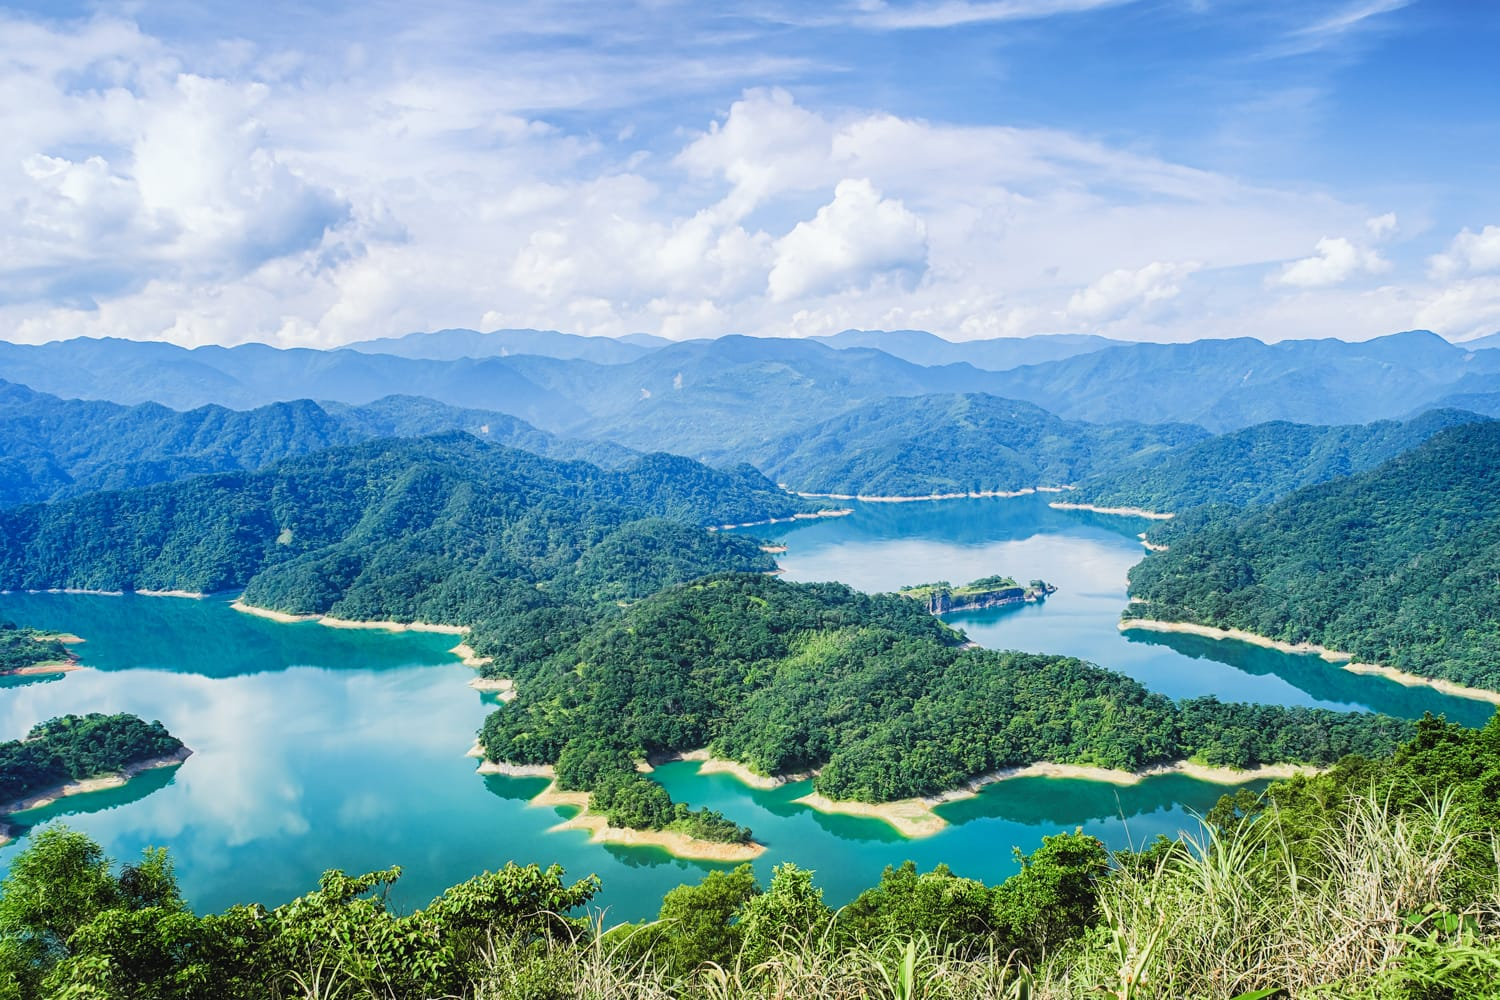 Thousand Island Lake from Shiding Crocodile Island at Feitsui Dam in Shiding District, New Taipei, Taiwan